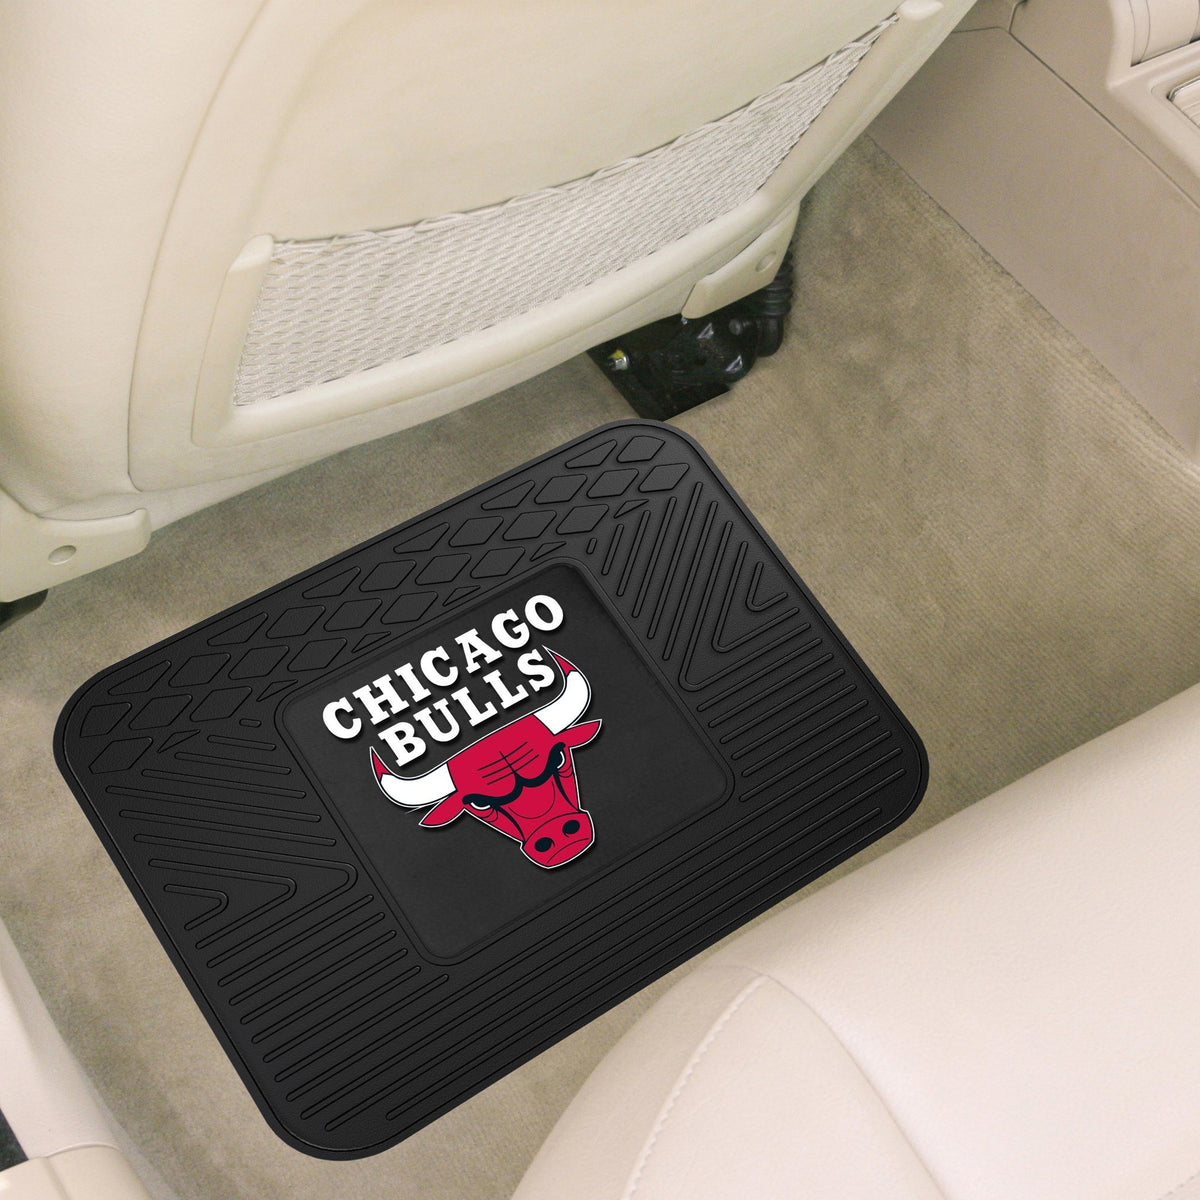 NBA - Utility Mat NBA Mats, Rear Car Mats, Utility Mat, NBA, Auto Fan Mats Chicago Bulls